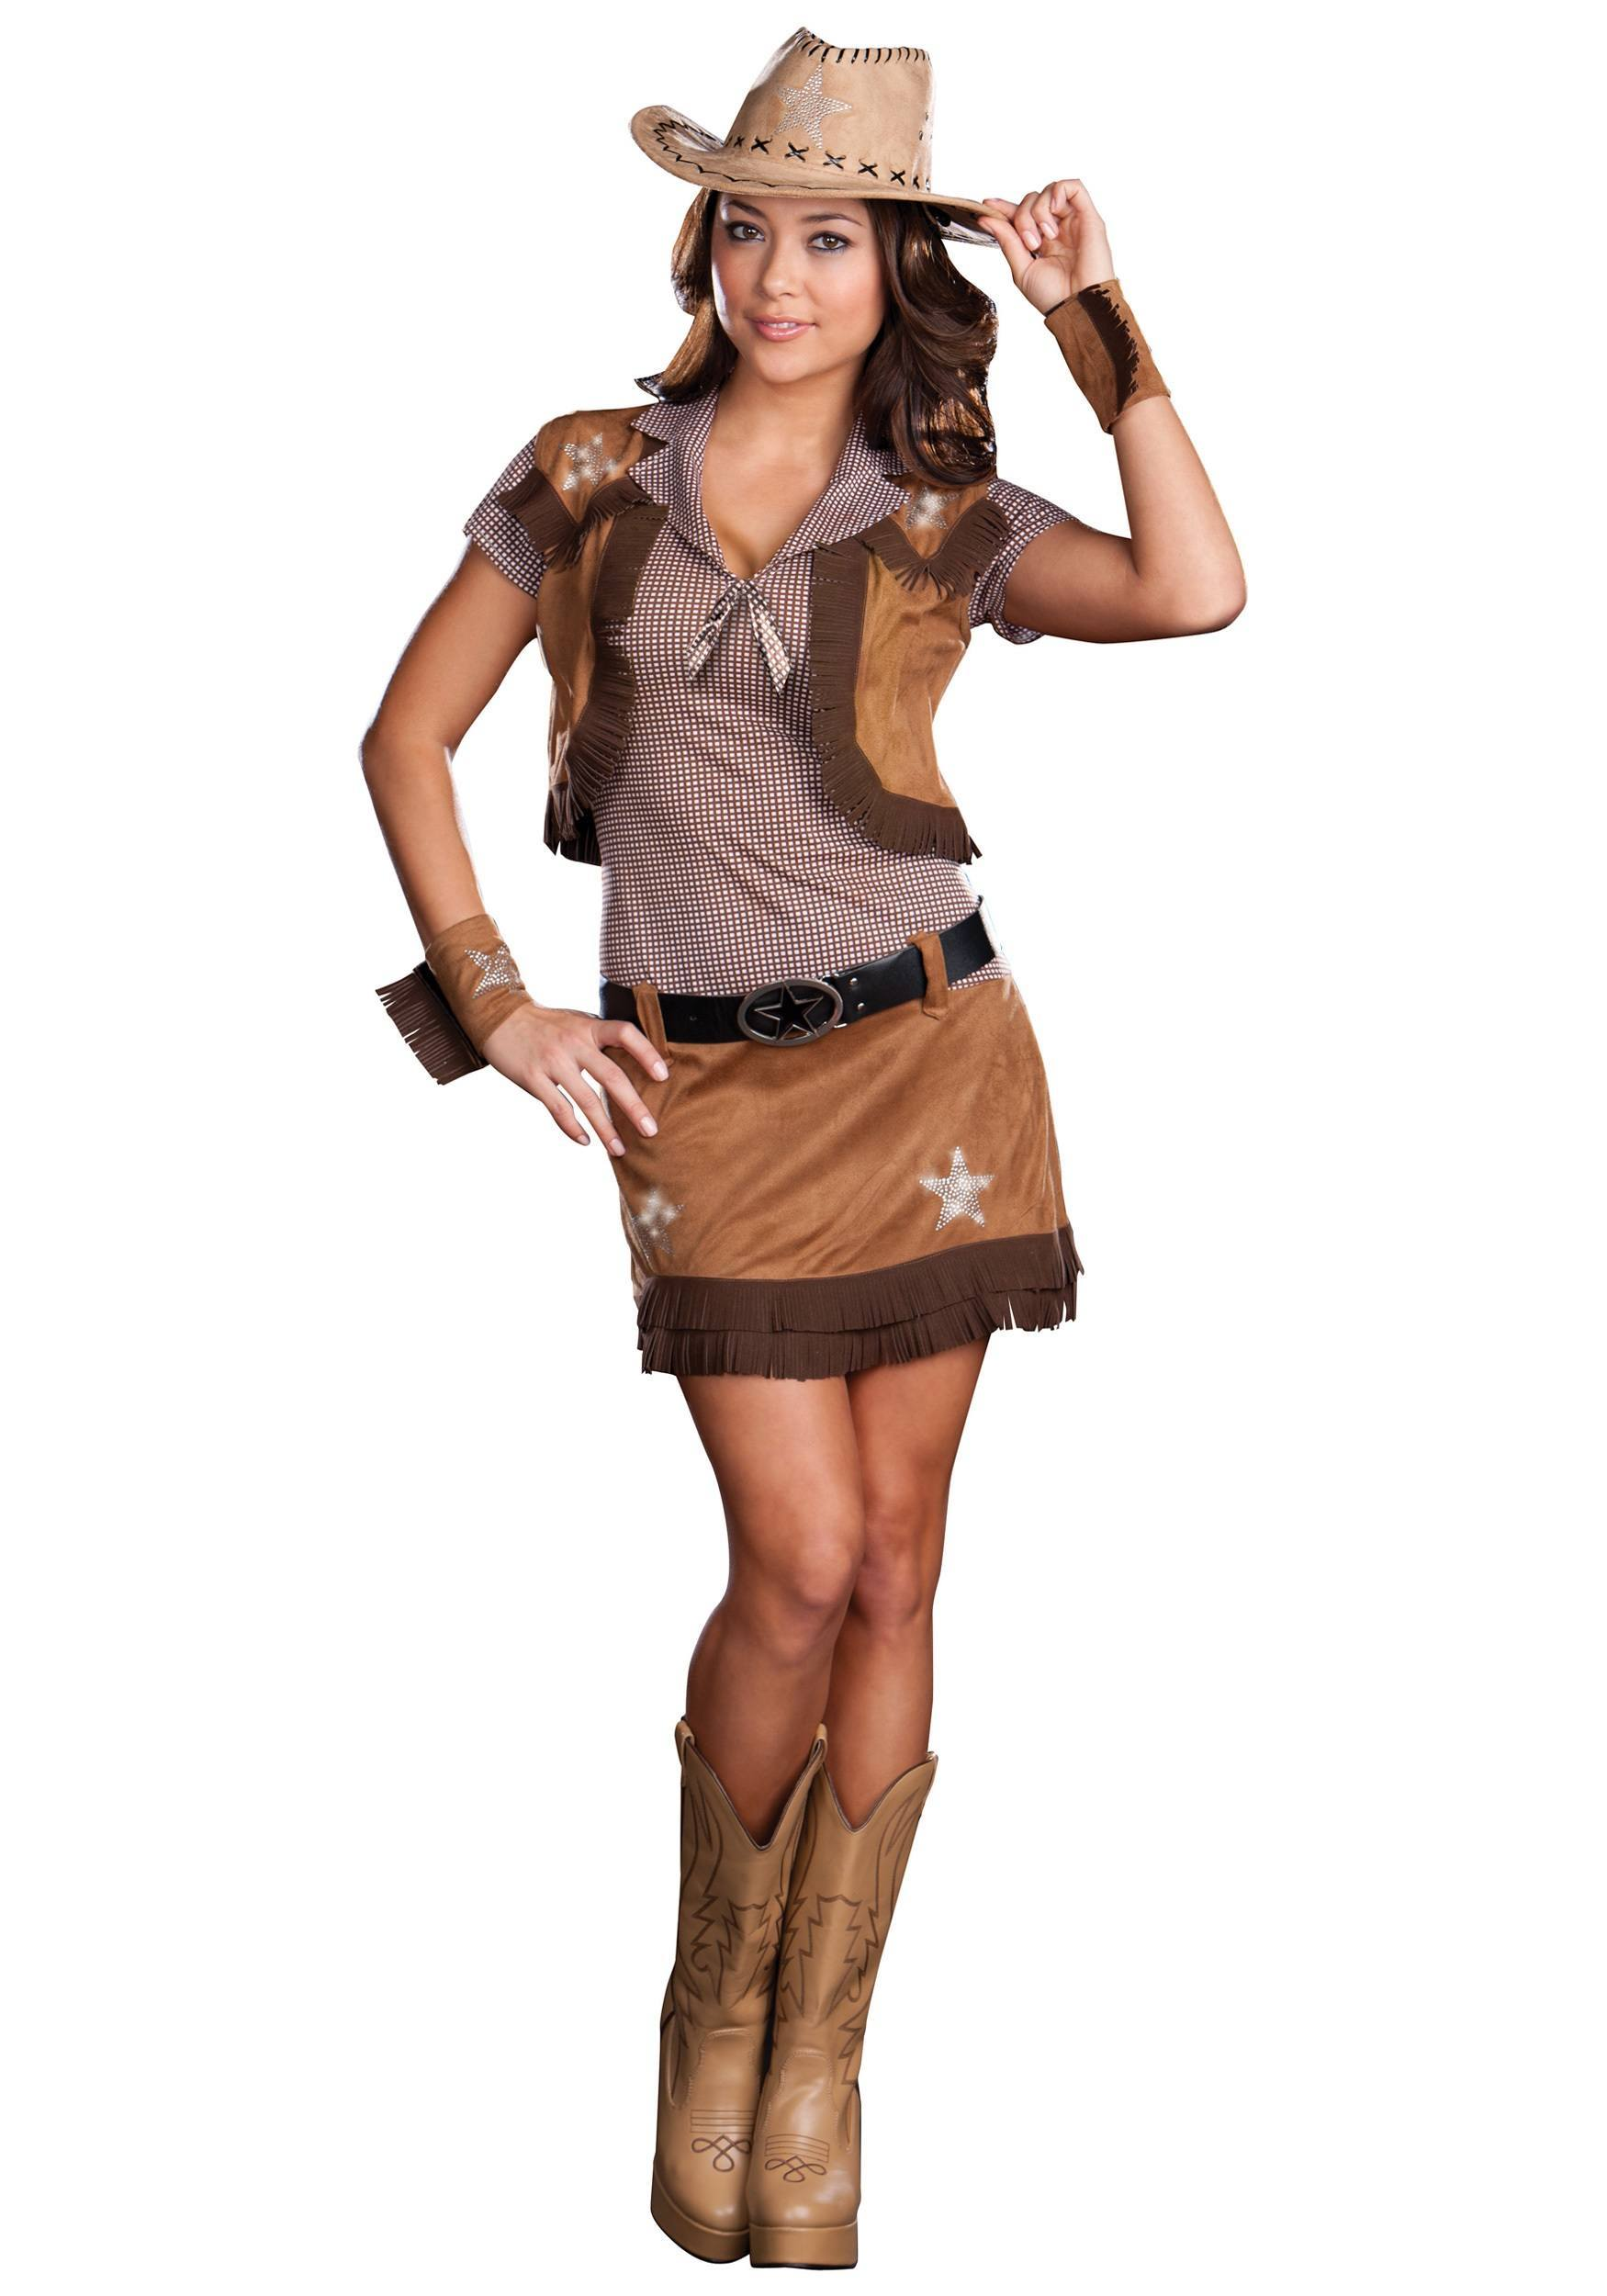 cowgirl outfit cowgirl outfits - 25 ideas on how to dress like cowgirl GLSMXNW